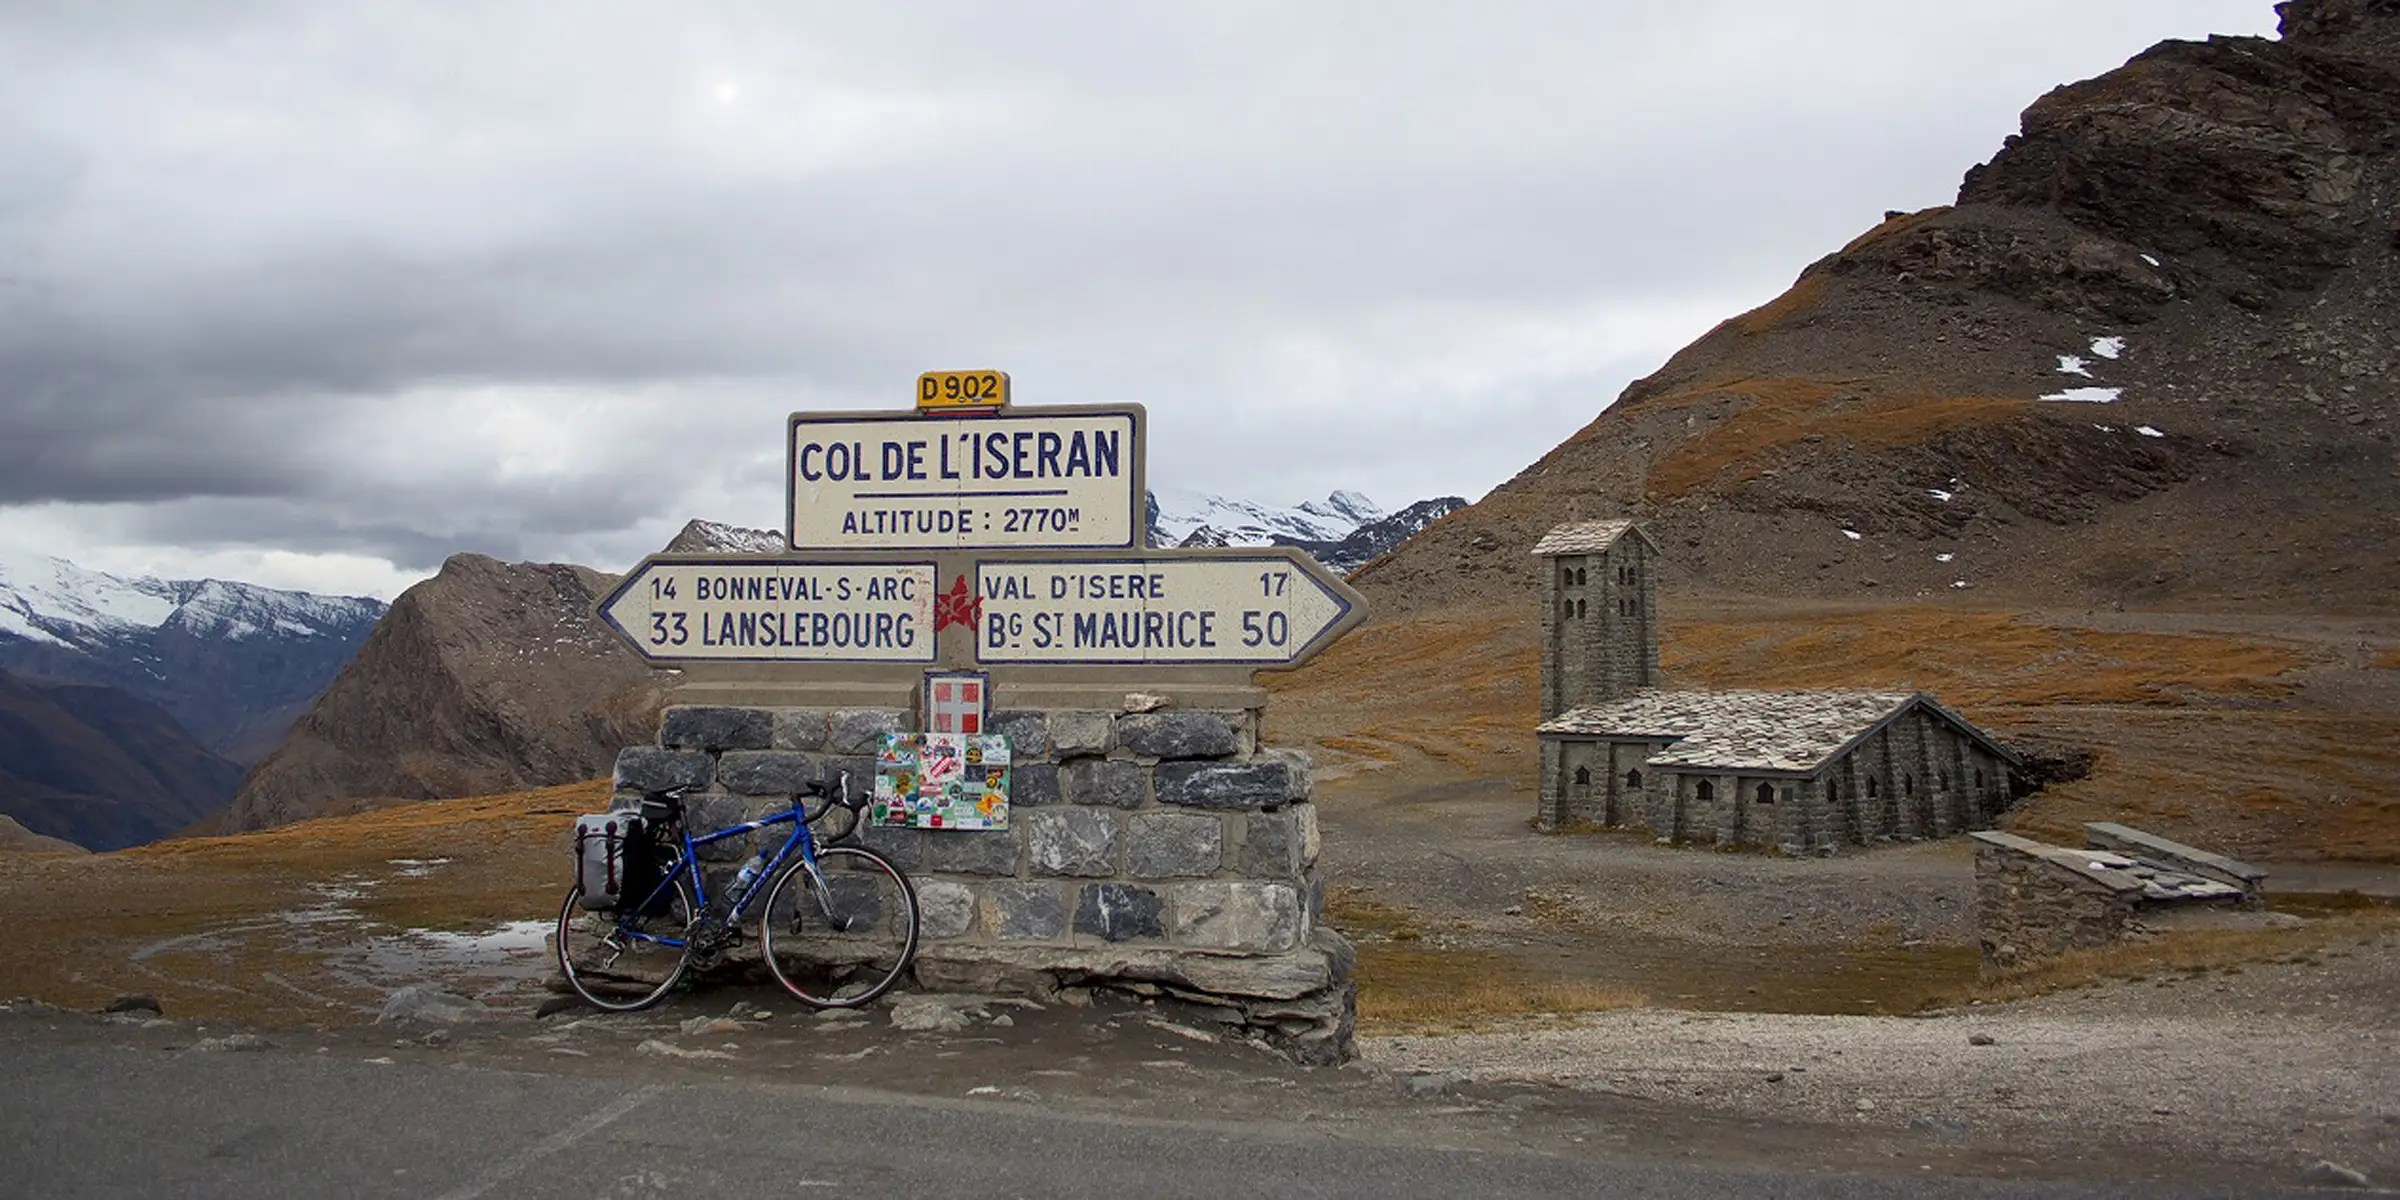 Col de l'Iseran in France is the highest paved road in the Alps. This scenic route is open only in the summer and has been used several times in the Tour de France.